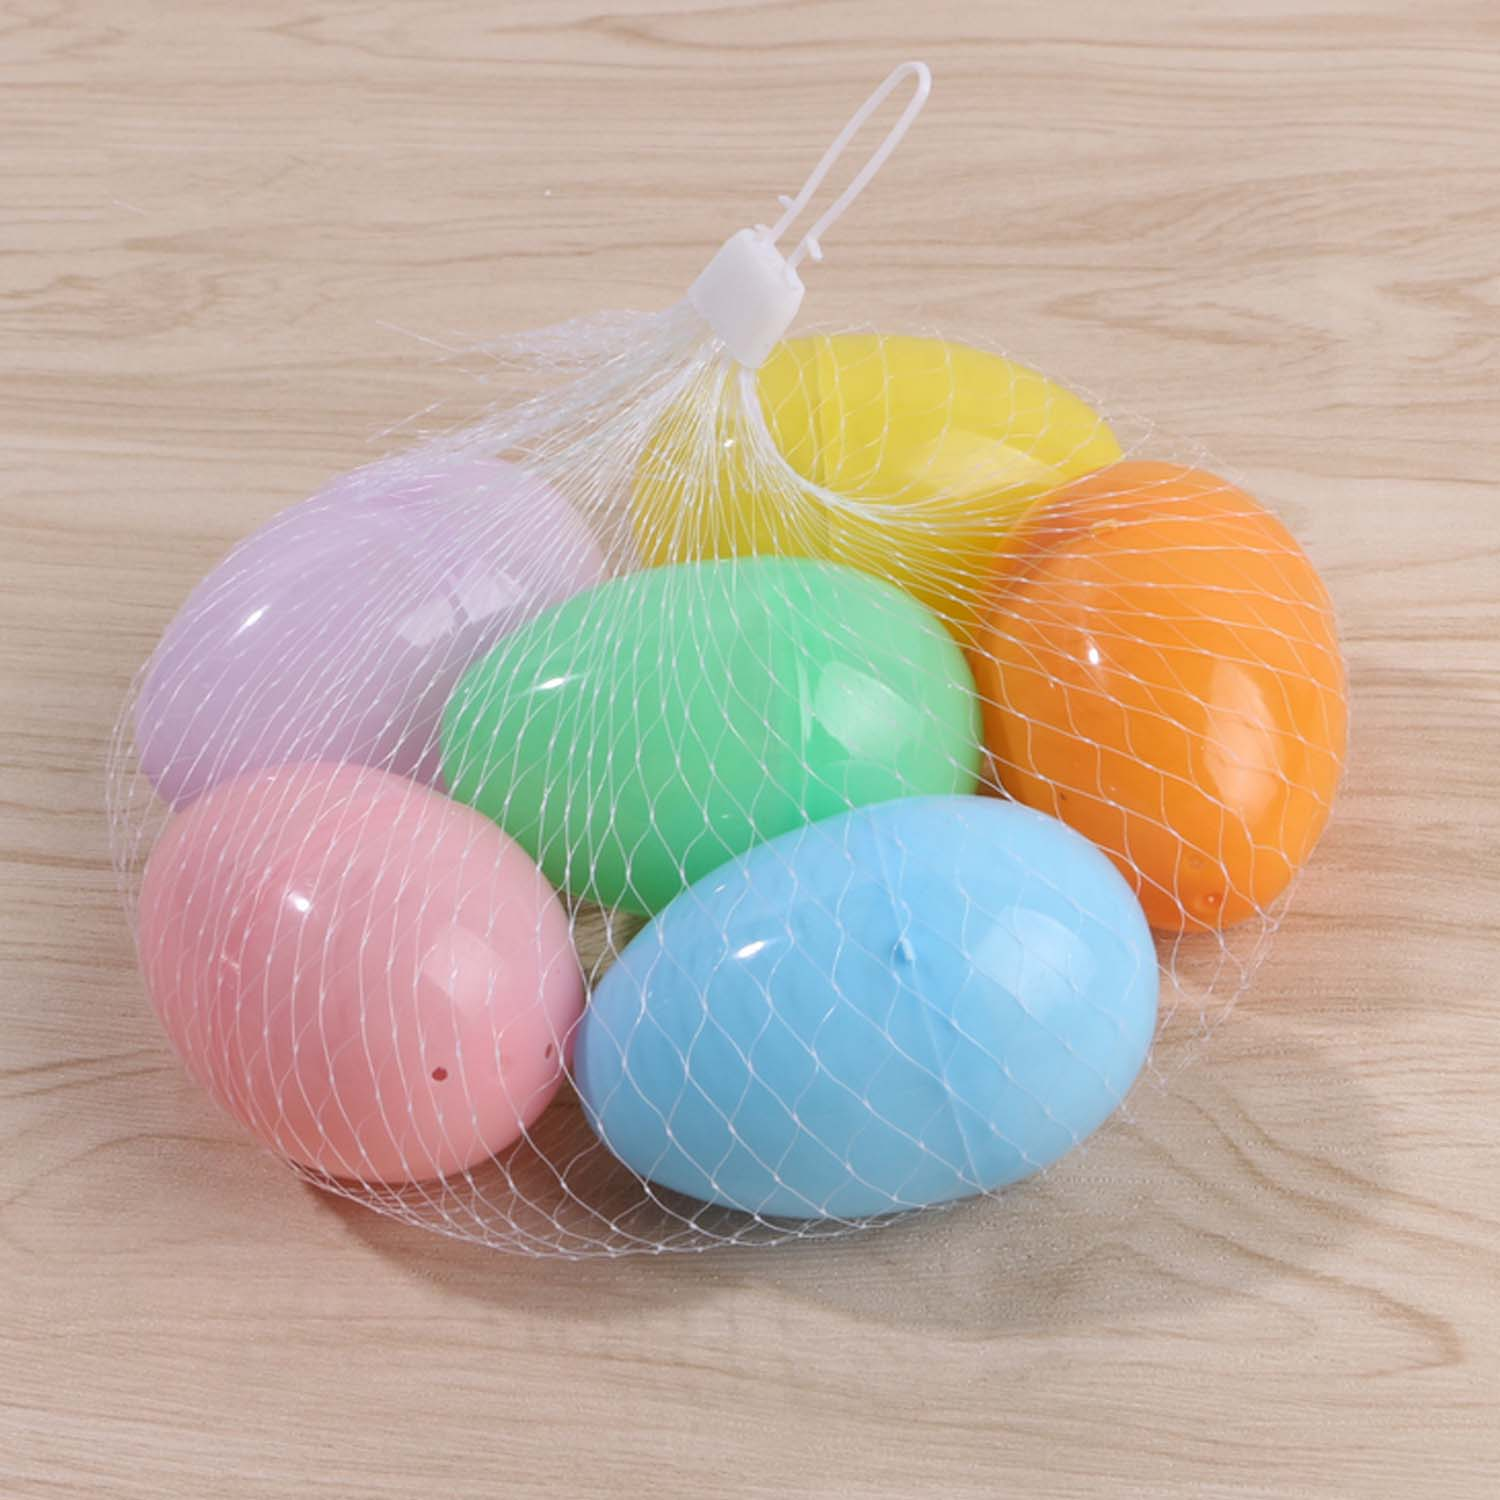 Besegad 6Colors DIY Fillable Empty Easter Egg Simulation Fake Plastic Artificial Eggs Set Easter Home Party Decorations Toy